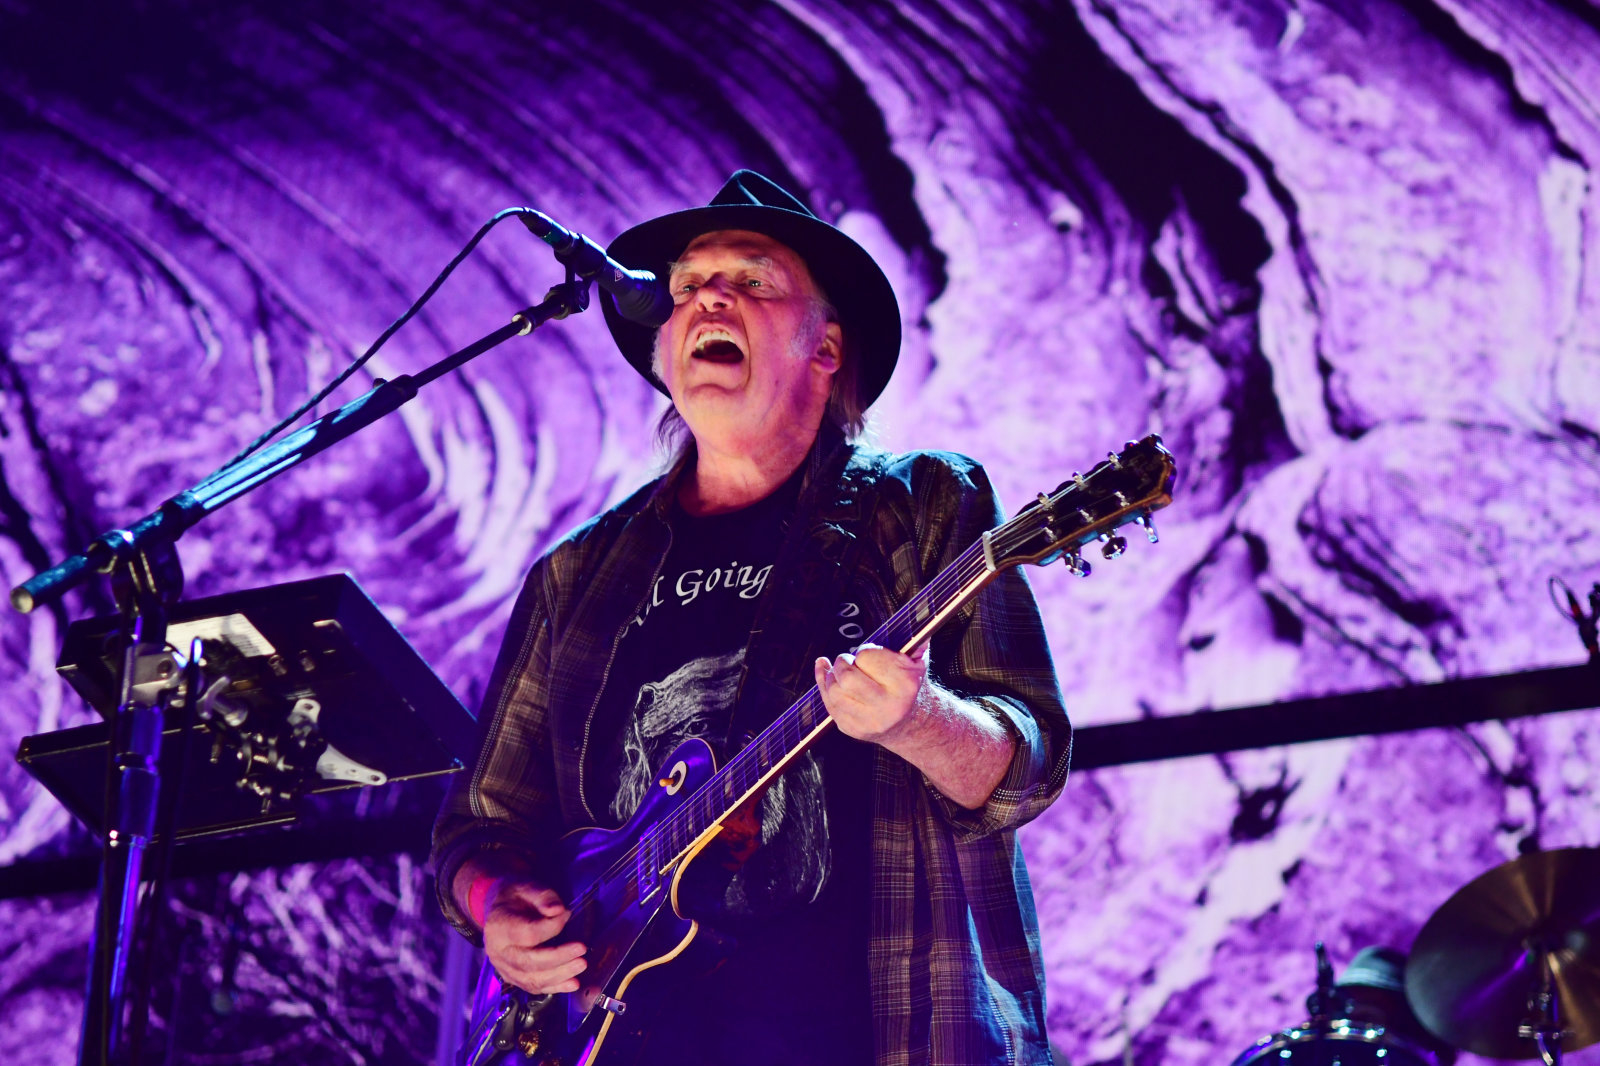 PITTSBURGH, PA - SEPTEMBER 16: Neil Young performs during  2017 Farm Aid on September 16, 2017 in Burgettstown, Pennsylvania. (Photo by Matt Kincaid/Getty Images)